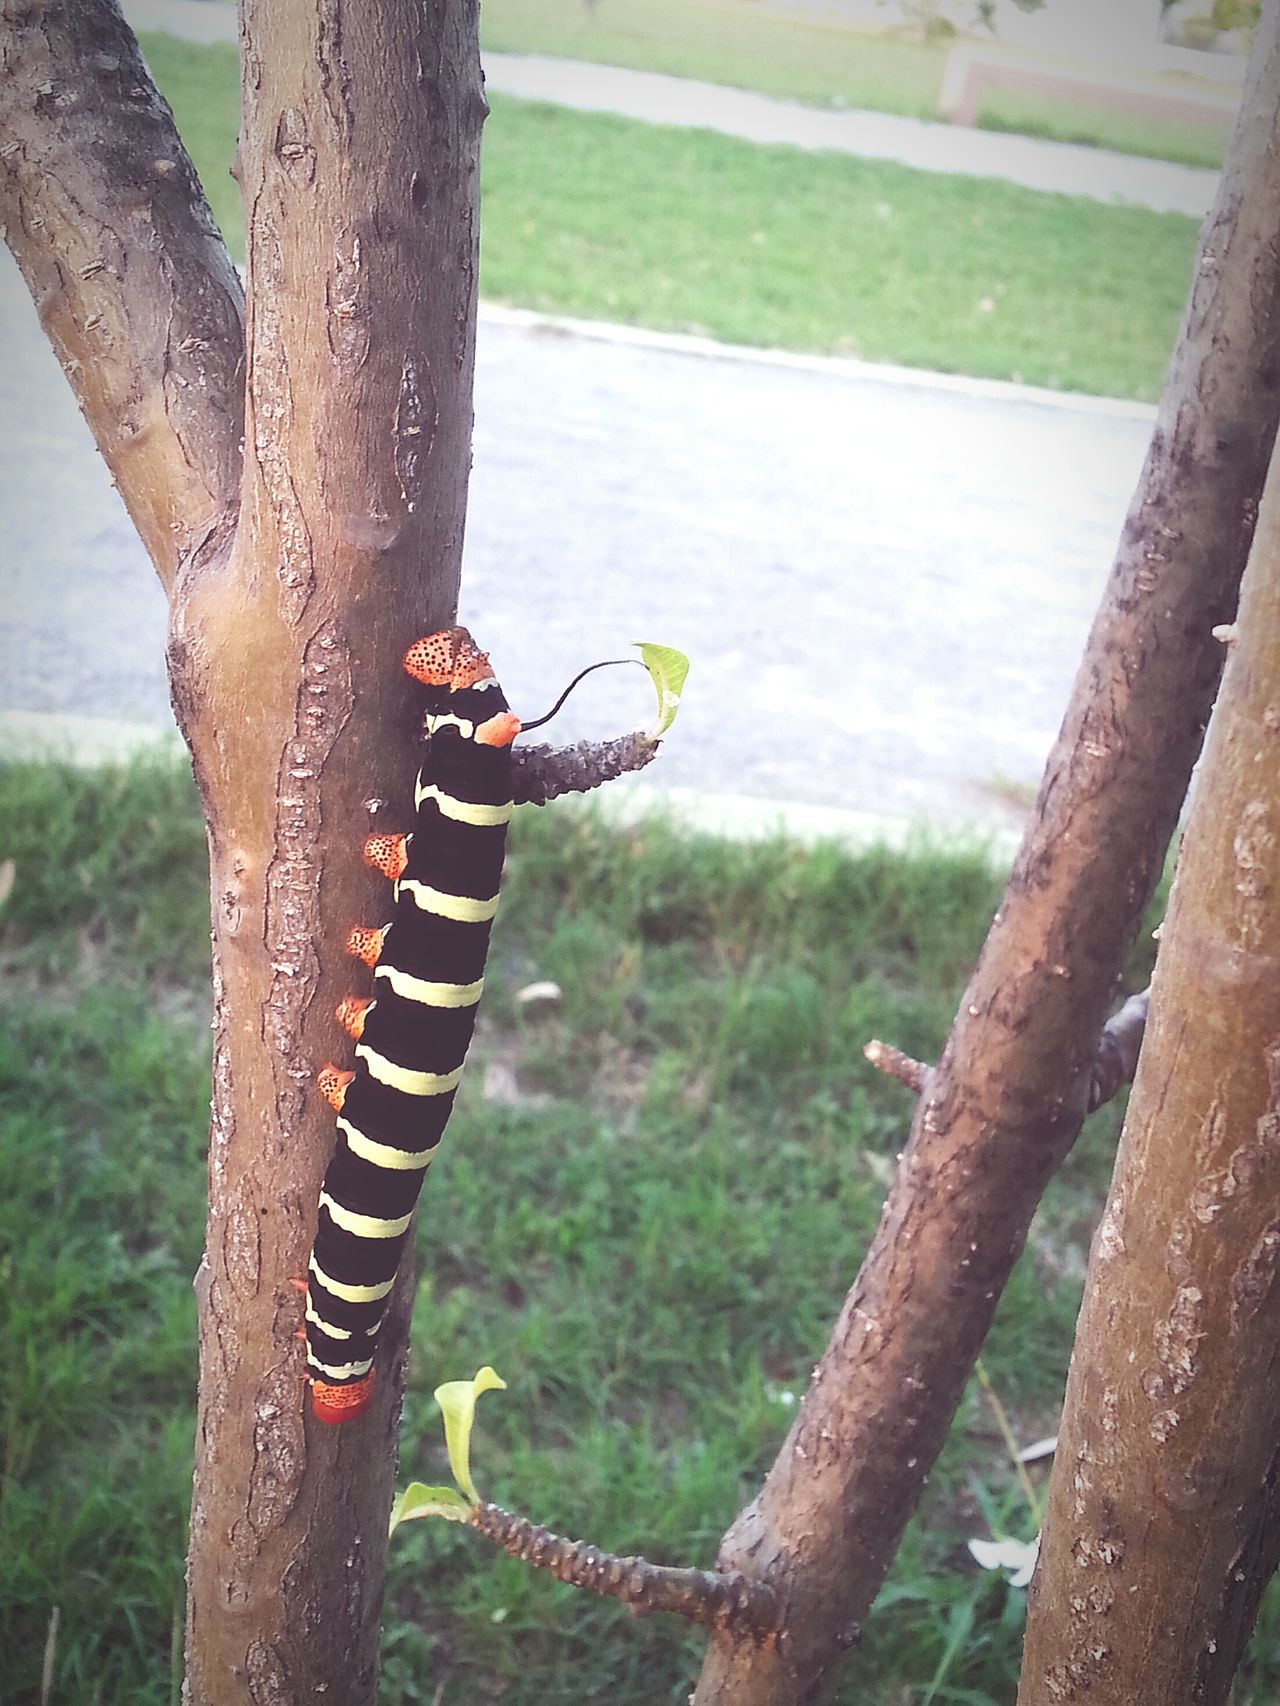 Caterpillar That's Me Taking Photos Relaxing Hi! Check This Out Enjoying Life Hanging Out Hello World Cheese! Red Black Yellow Loverofphotography EyeEm Nature Lover Nature Lover Vnmaphotography Beautiful Nature Beautiful ♥ Green Leaves Eyeemphotography Nature Trees